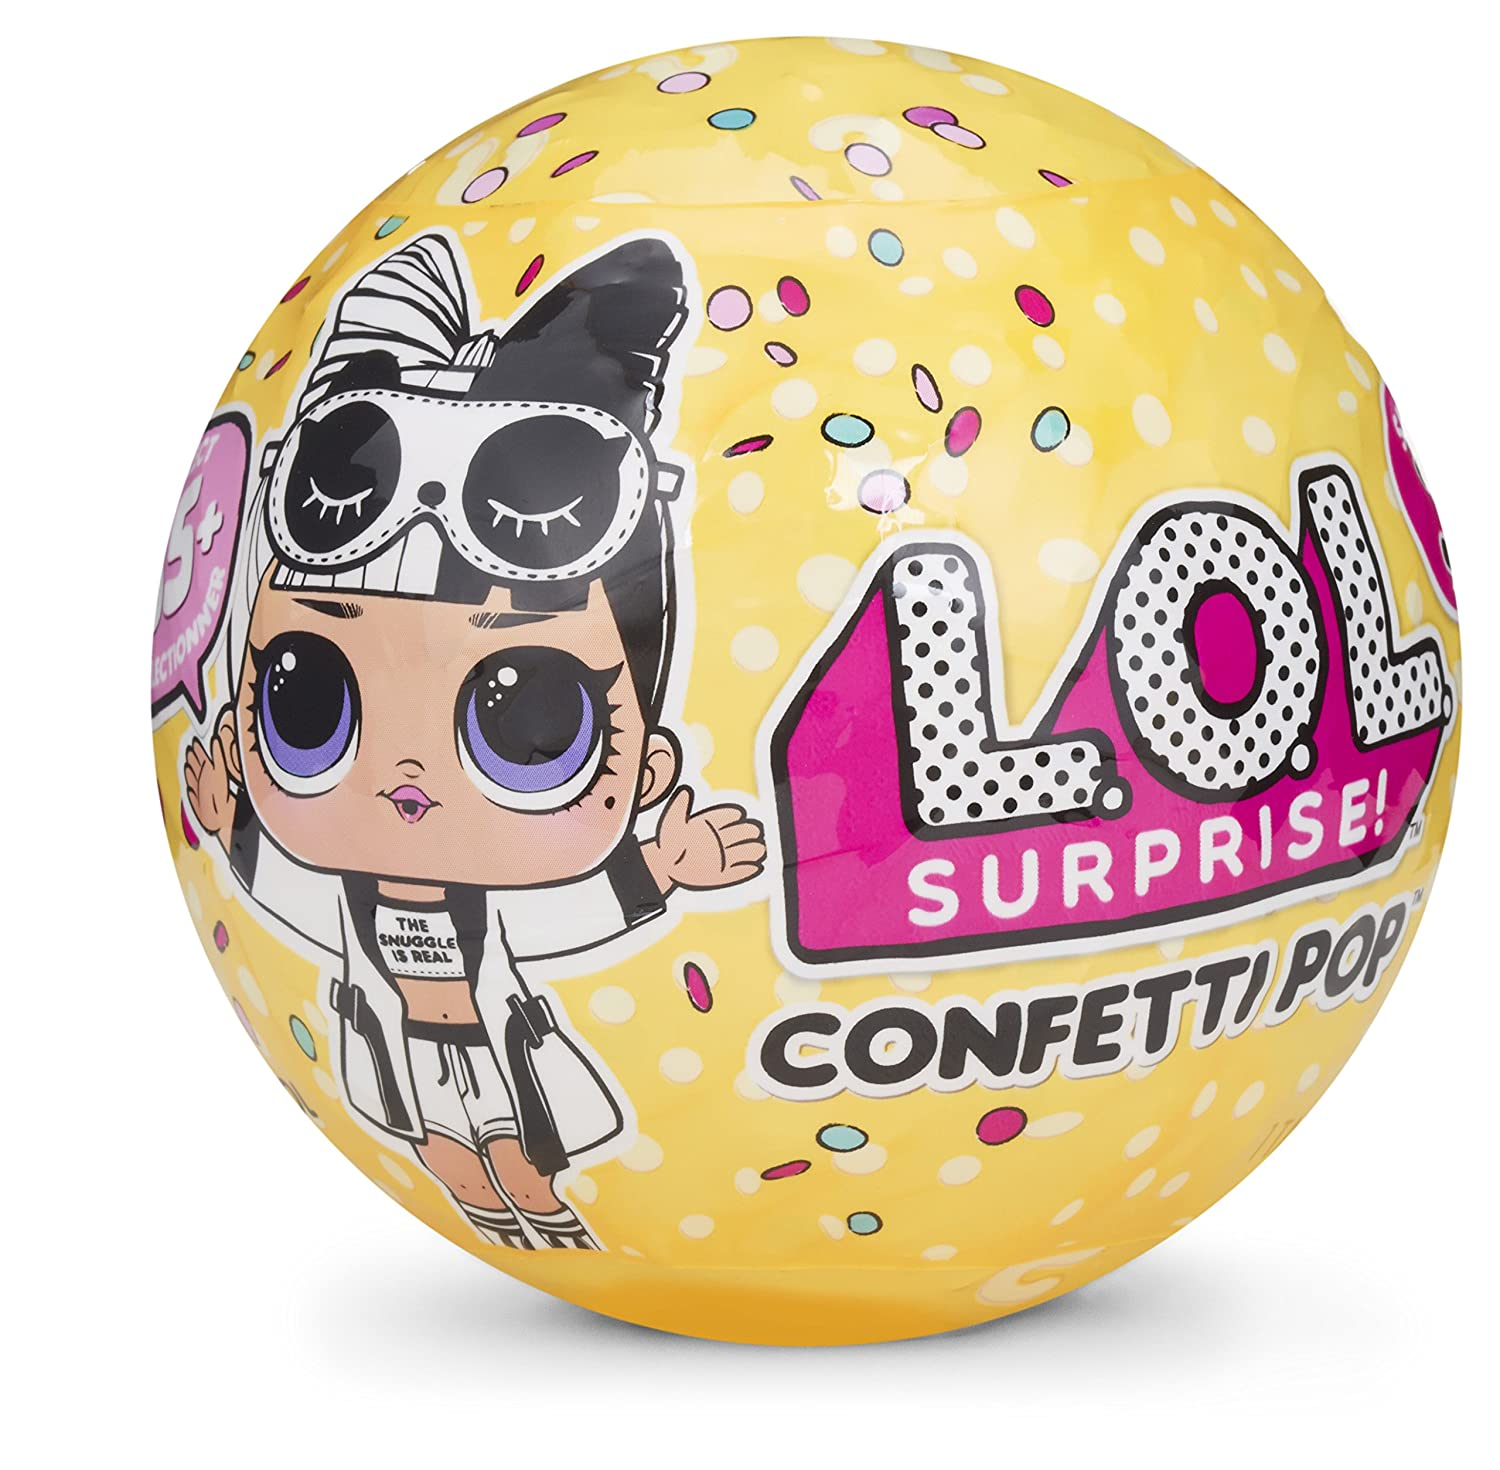 L.O.L. Surprise!! Confetti Pop Series 3 L.O.L Surprise! 551539